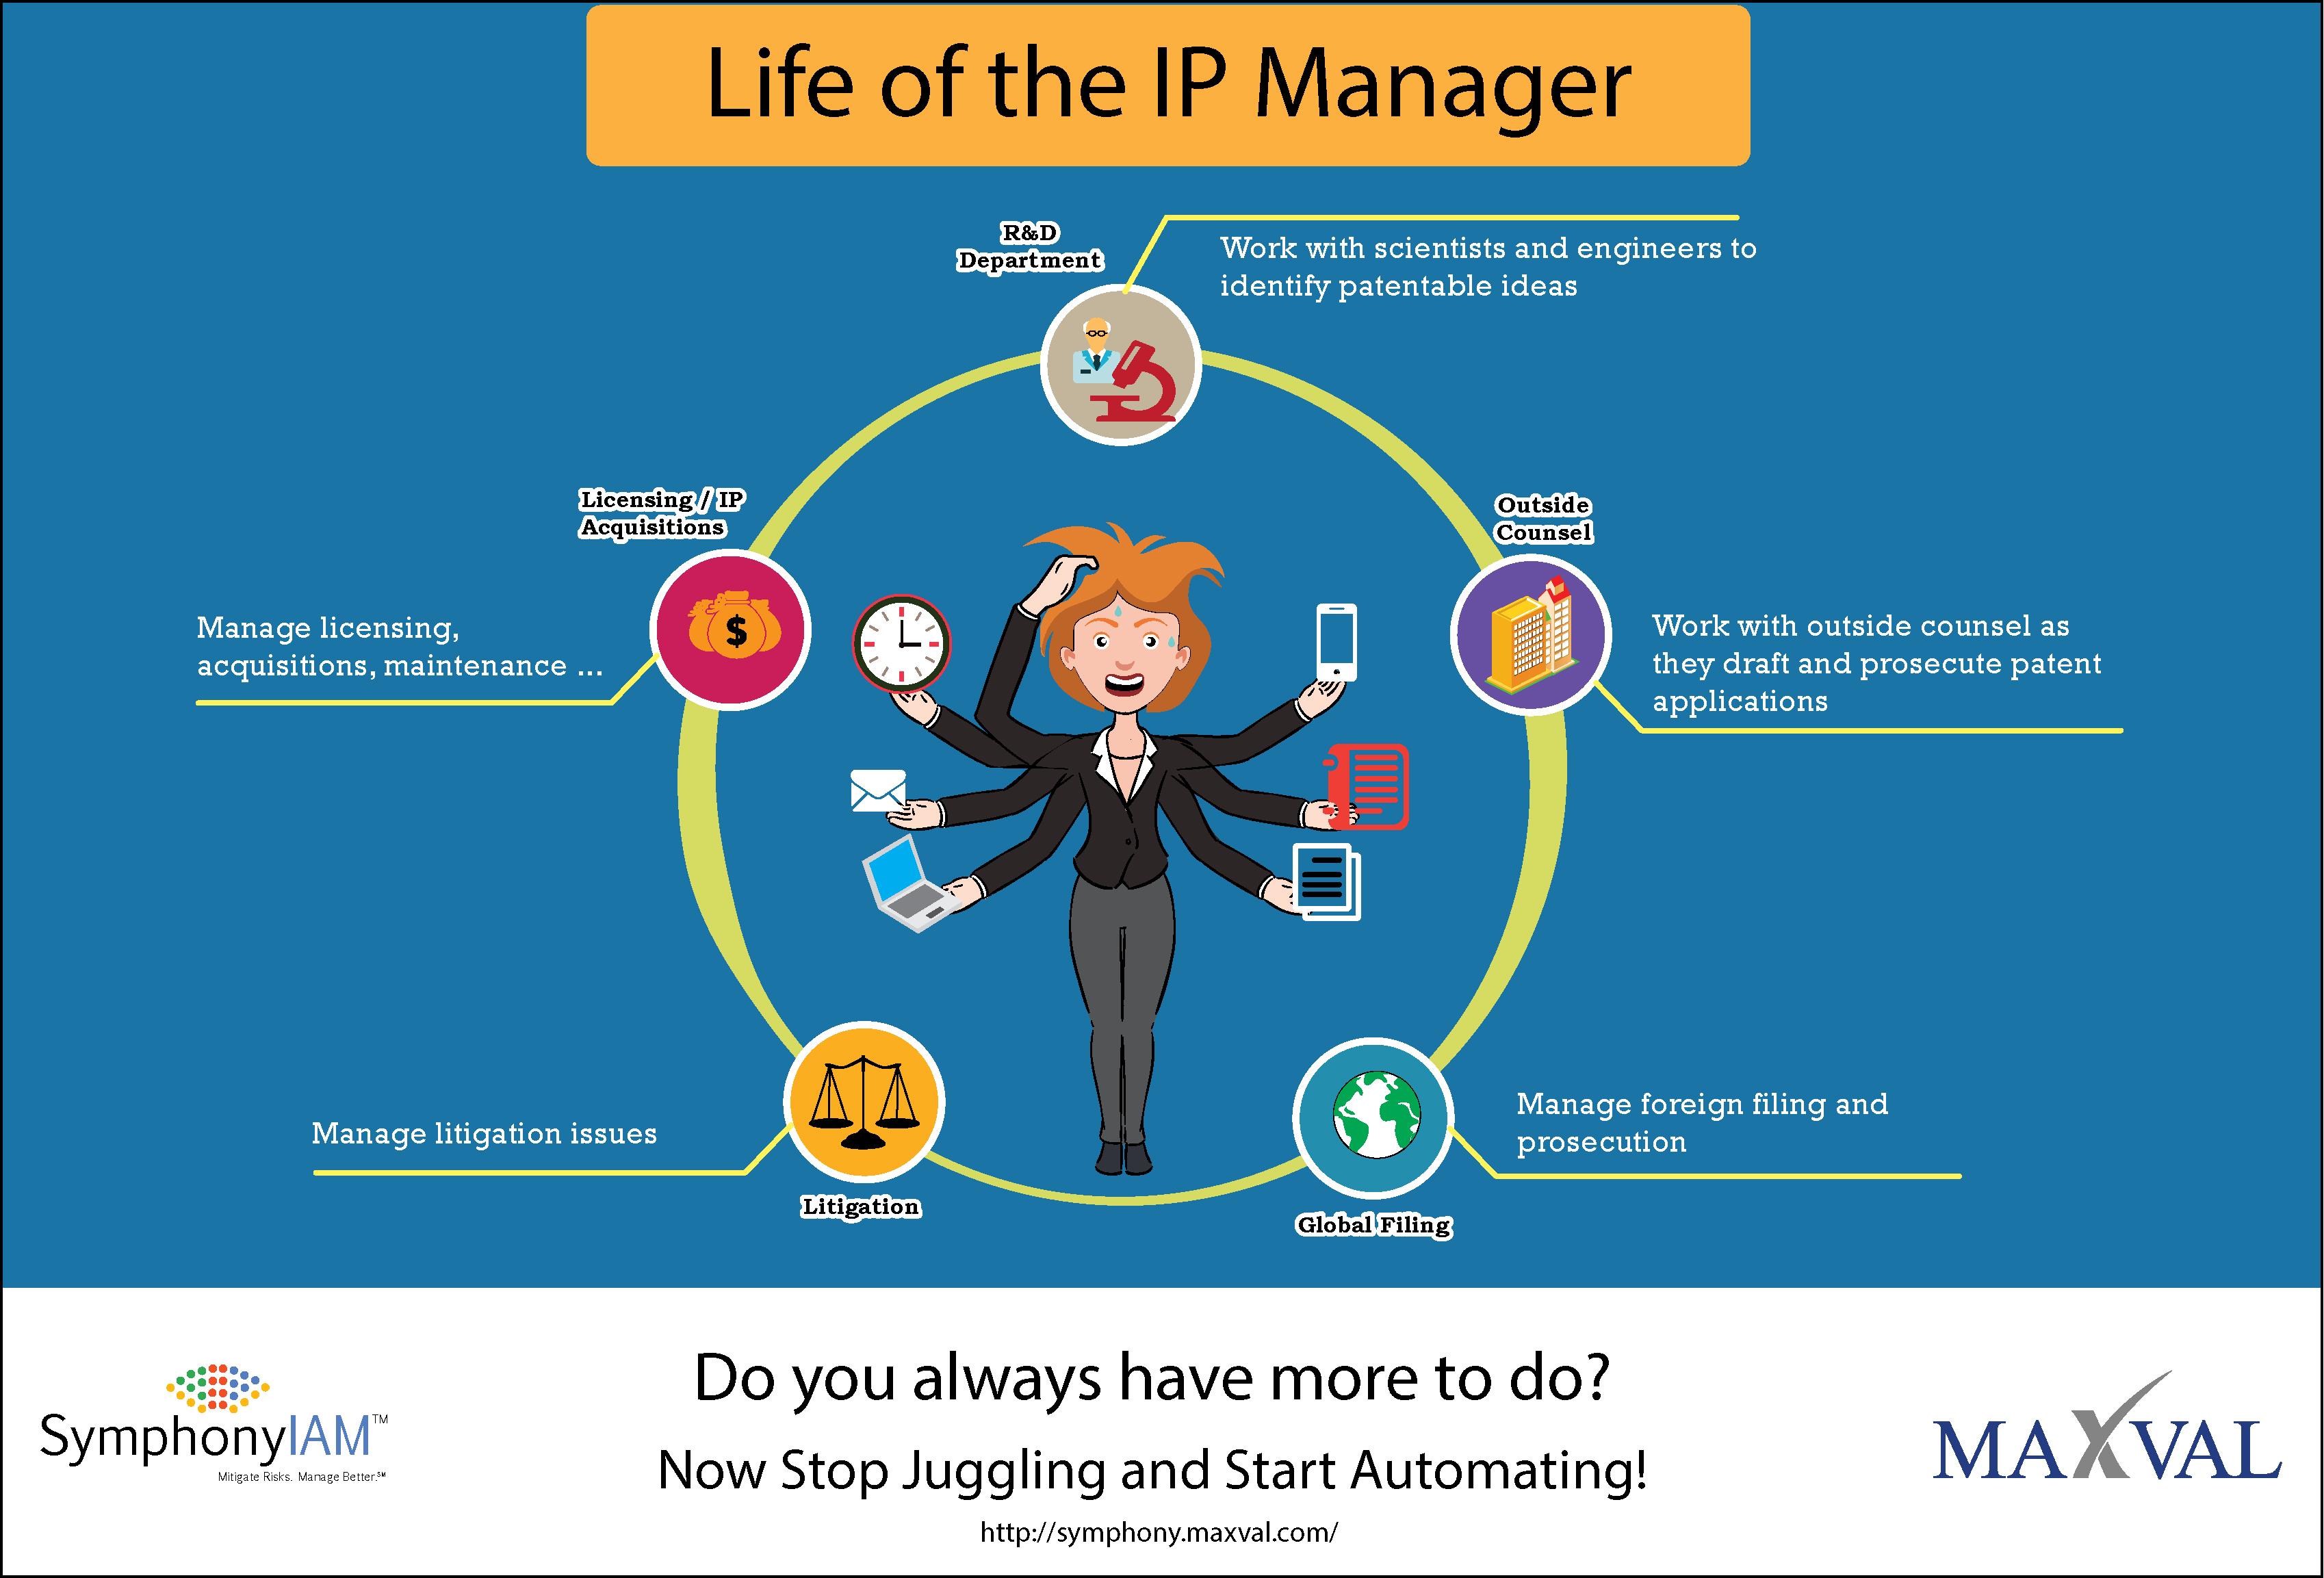 Are you the IP Manager